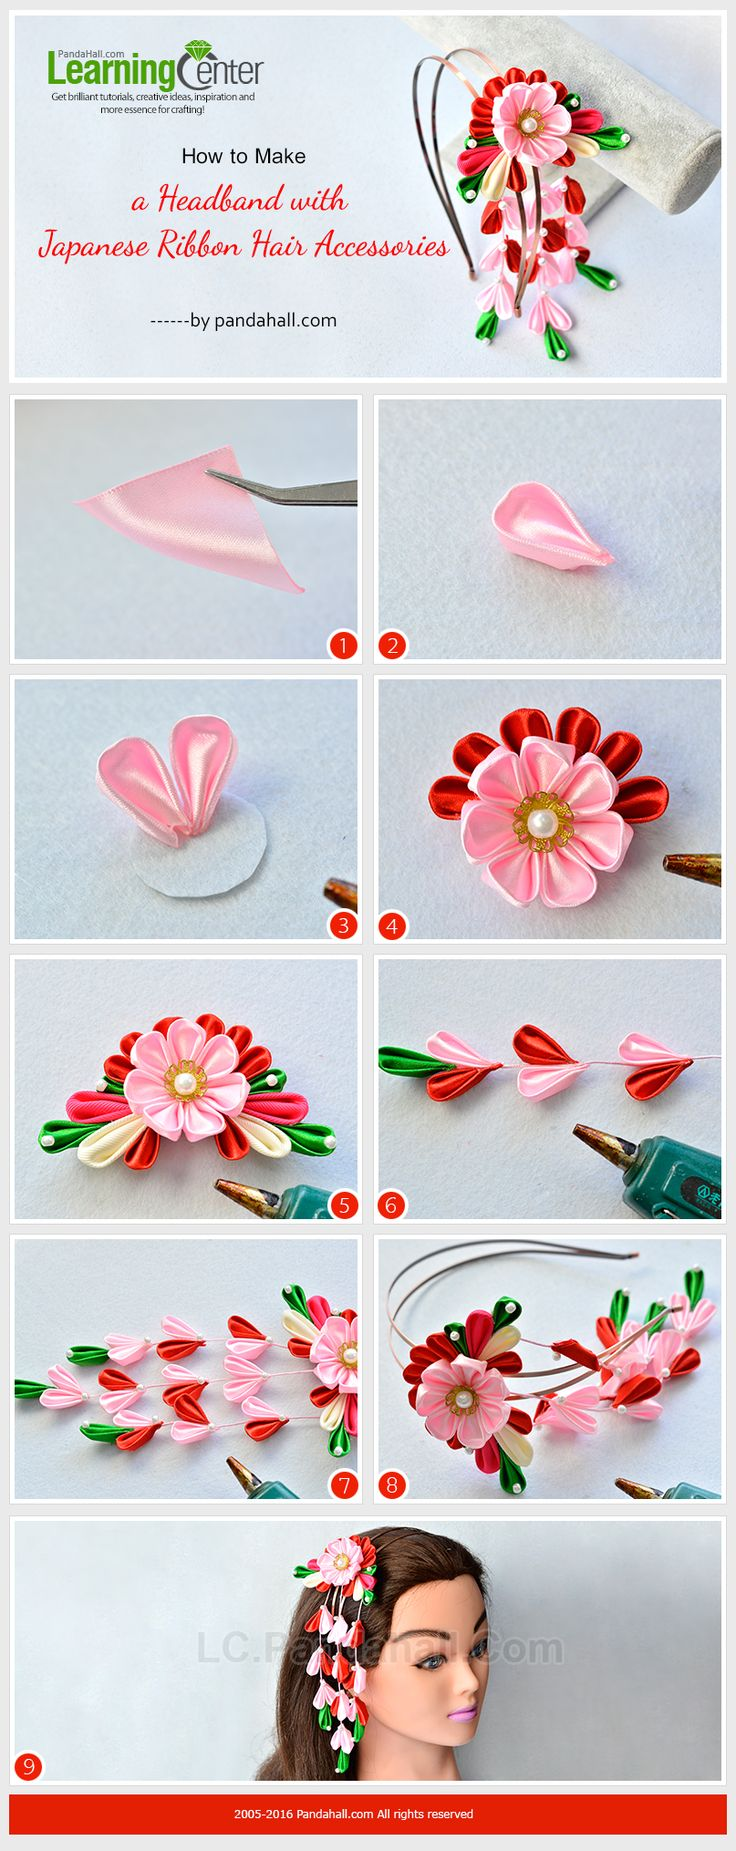 How to Make a Headband with Japanese Ribbon Hair Accessories from LC.Pandahall.com